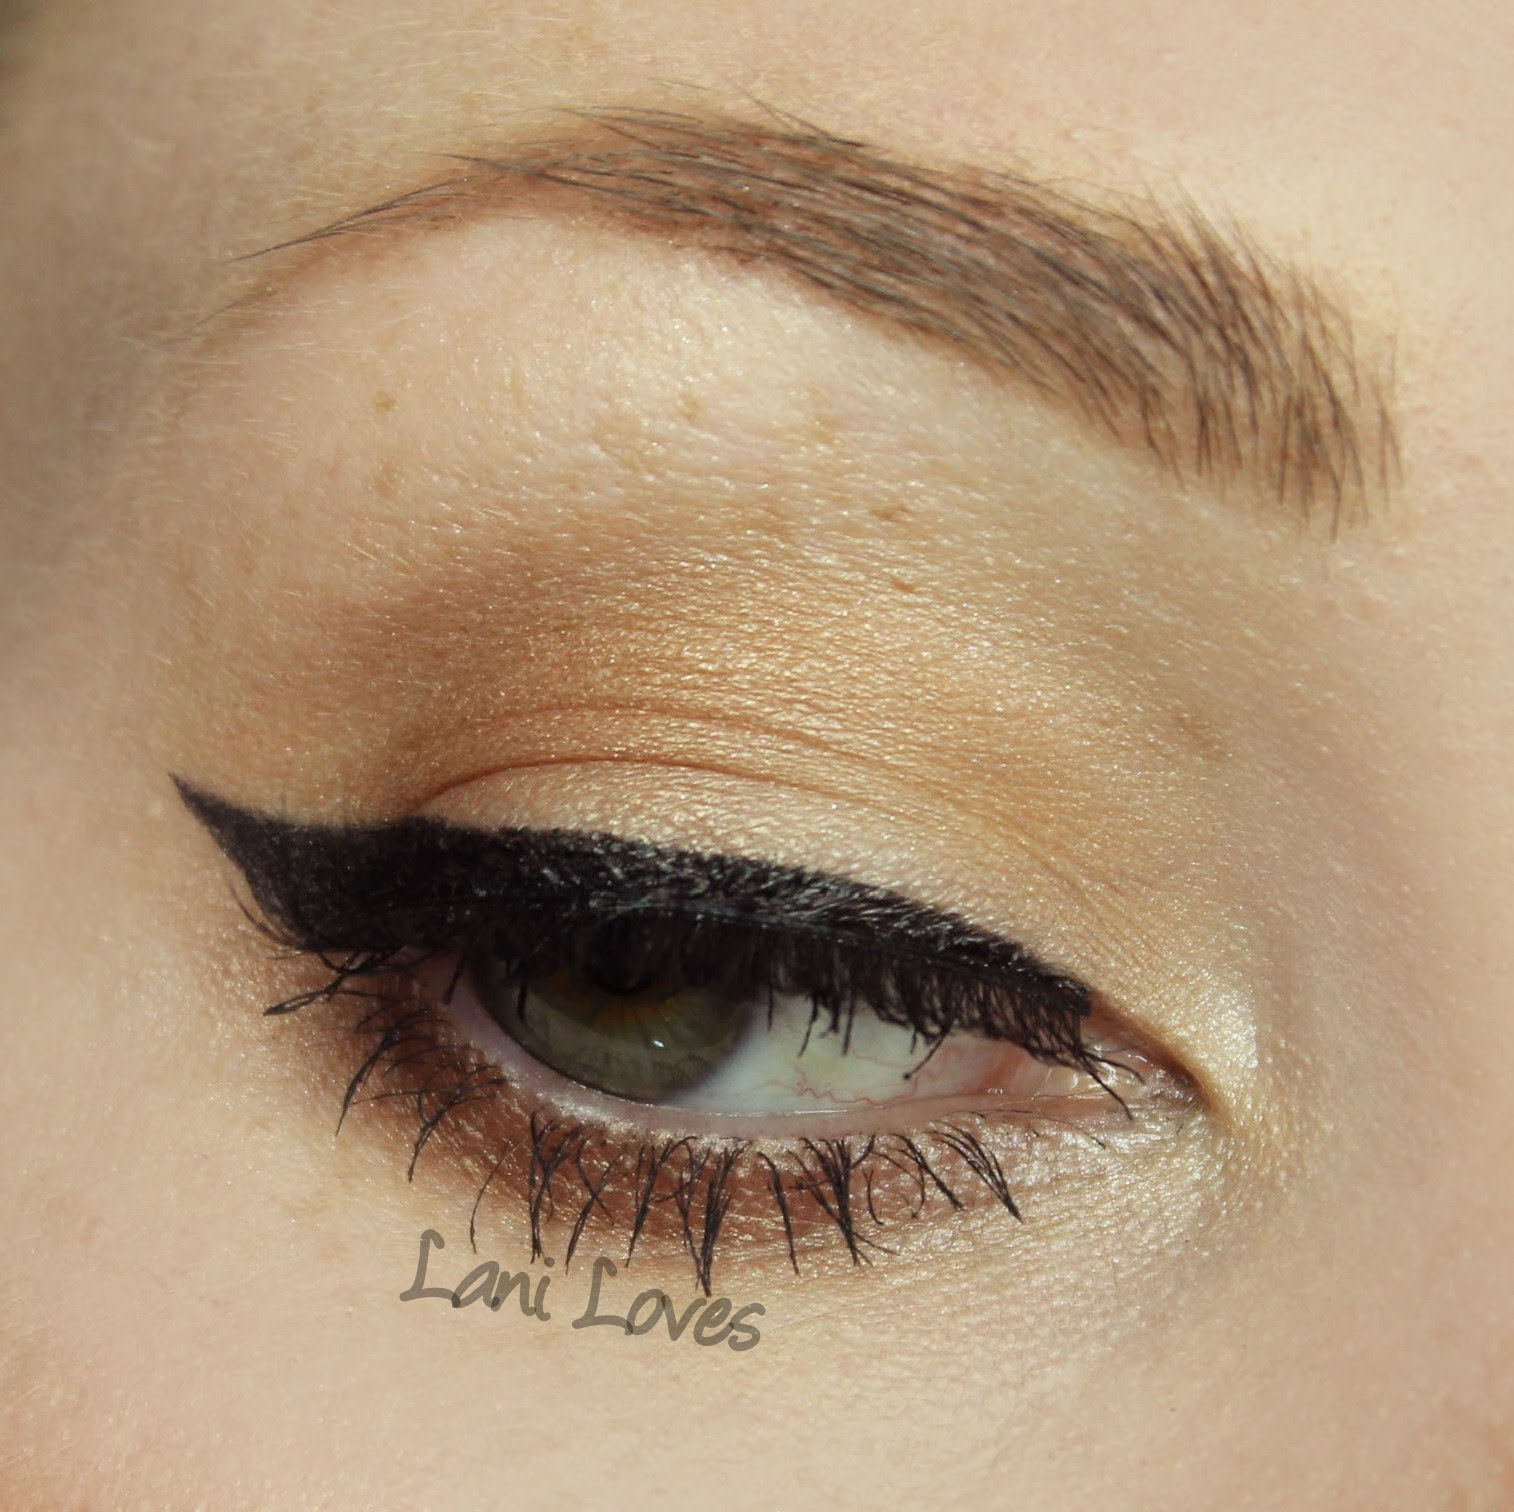 Essence Superfine Eyeliner Pen Swatches & Review